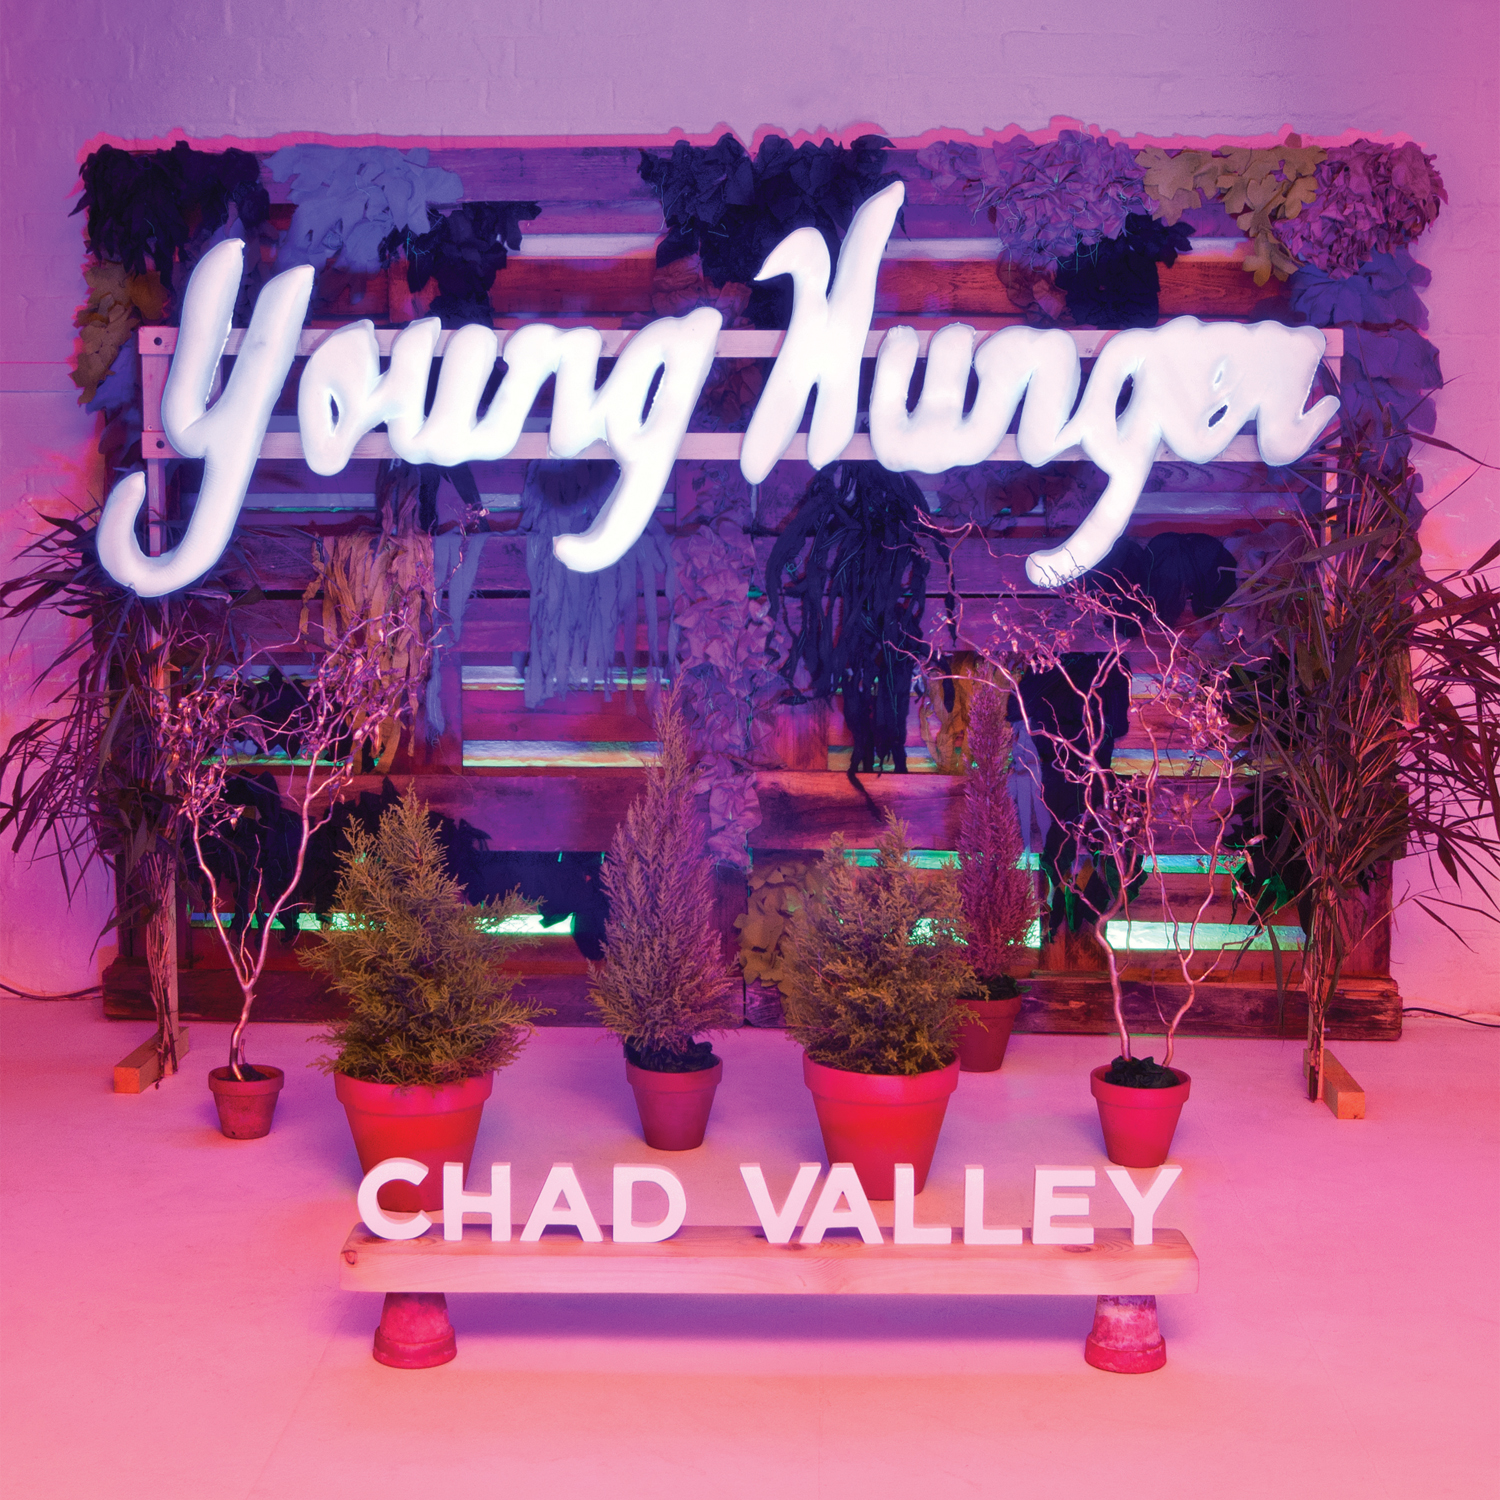 Young Hunger (2012)  UK:  Vinyl  /  CD   US: SOLD OUT